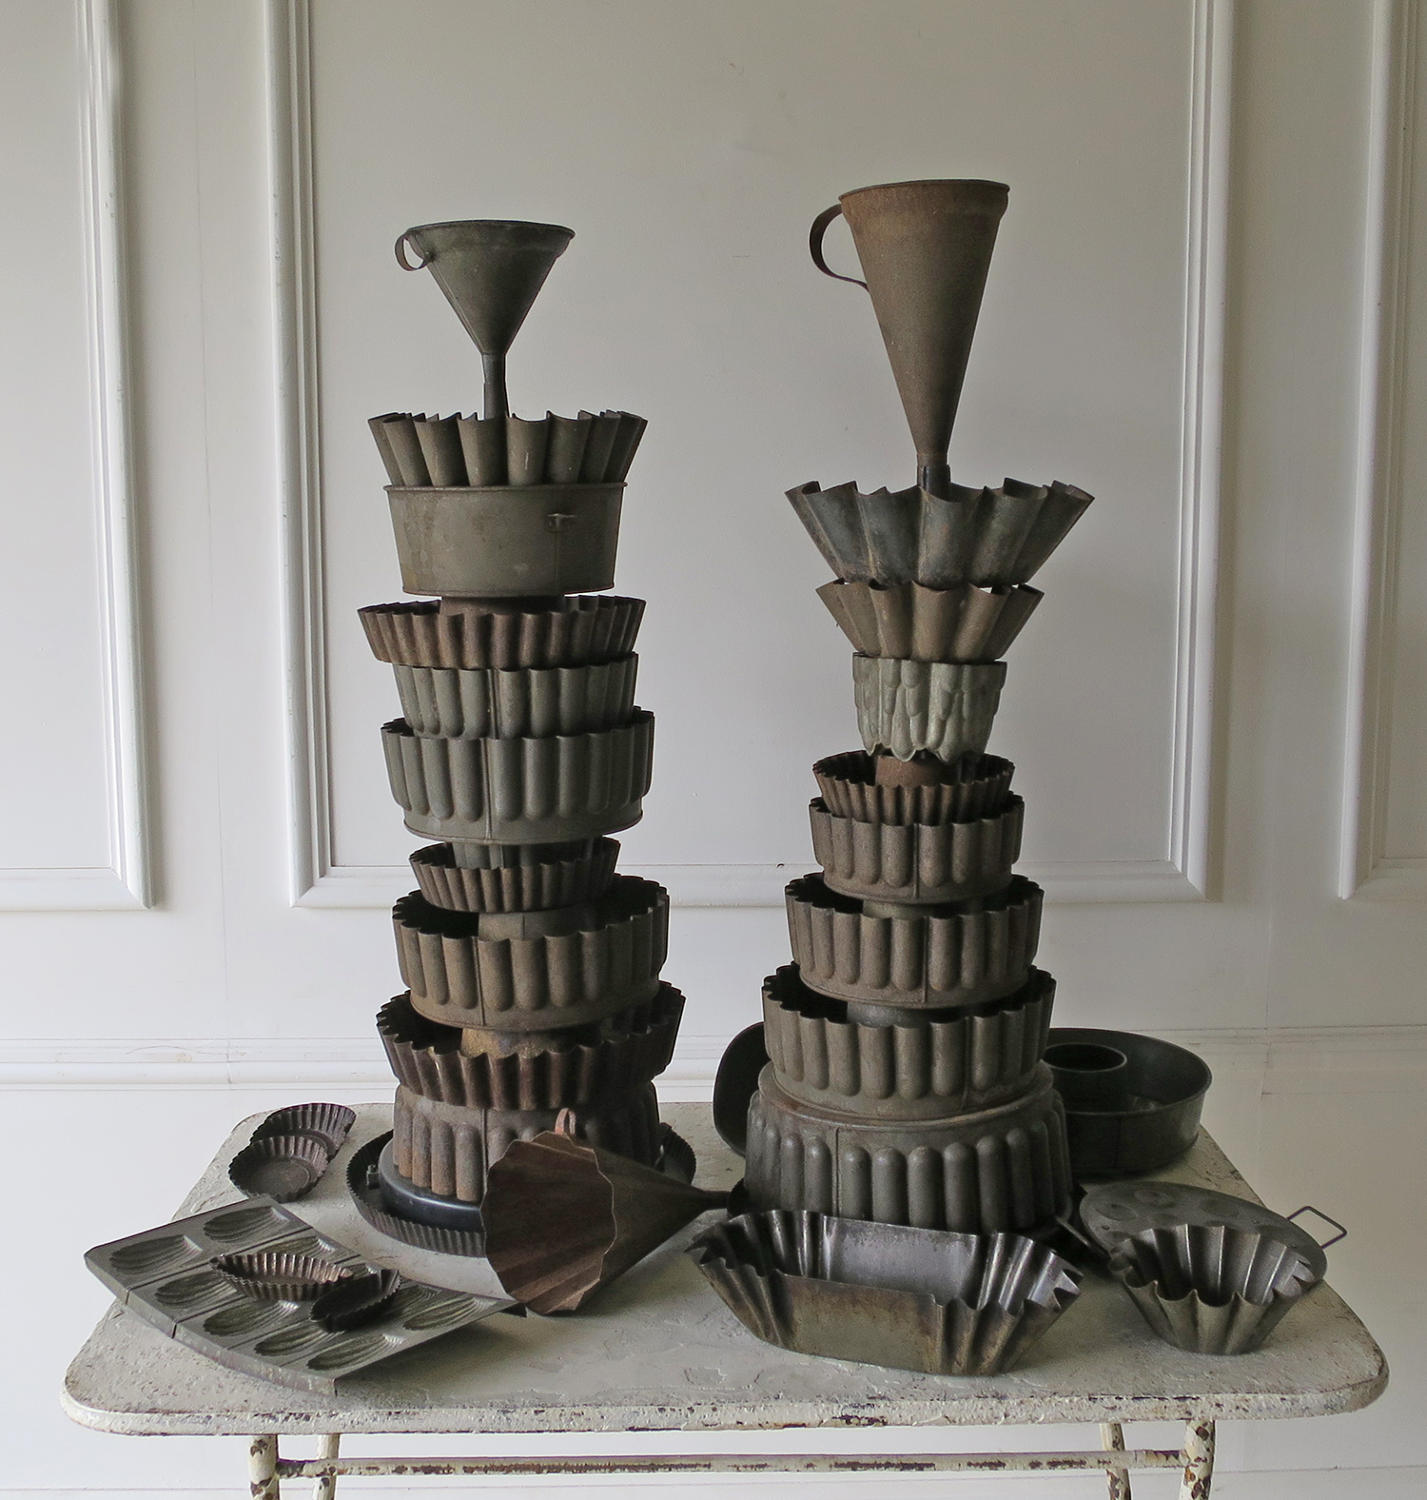 Pair of Tin Towers made with old French Tole Moulds - circa 1940